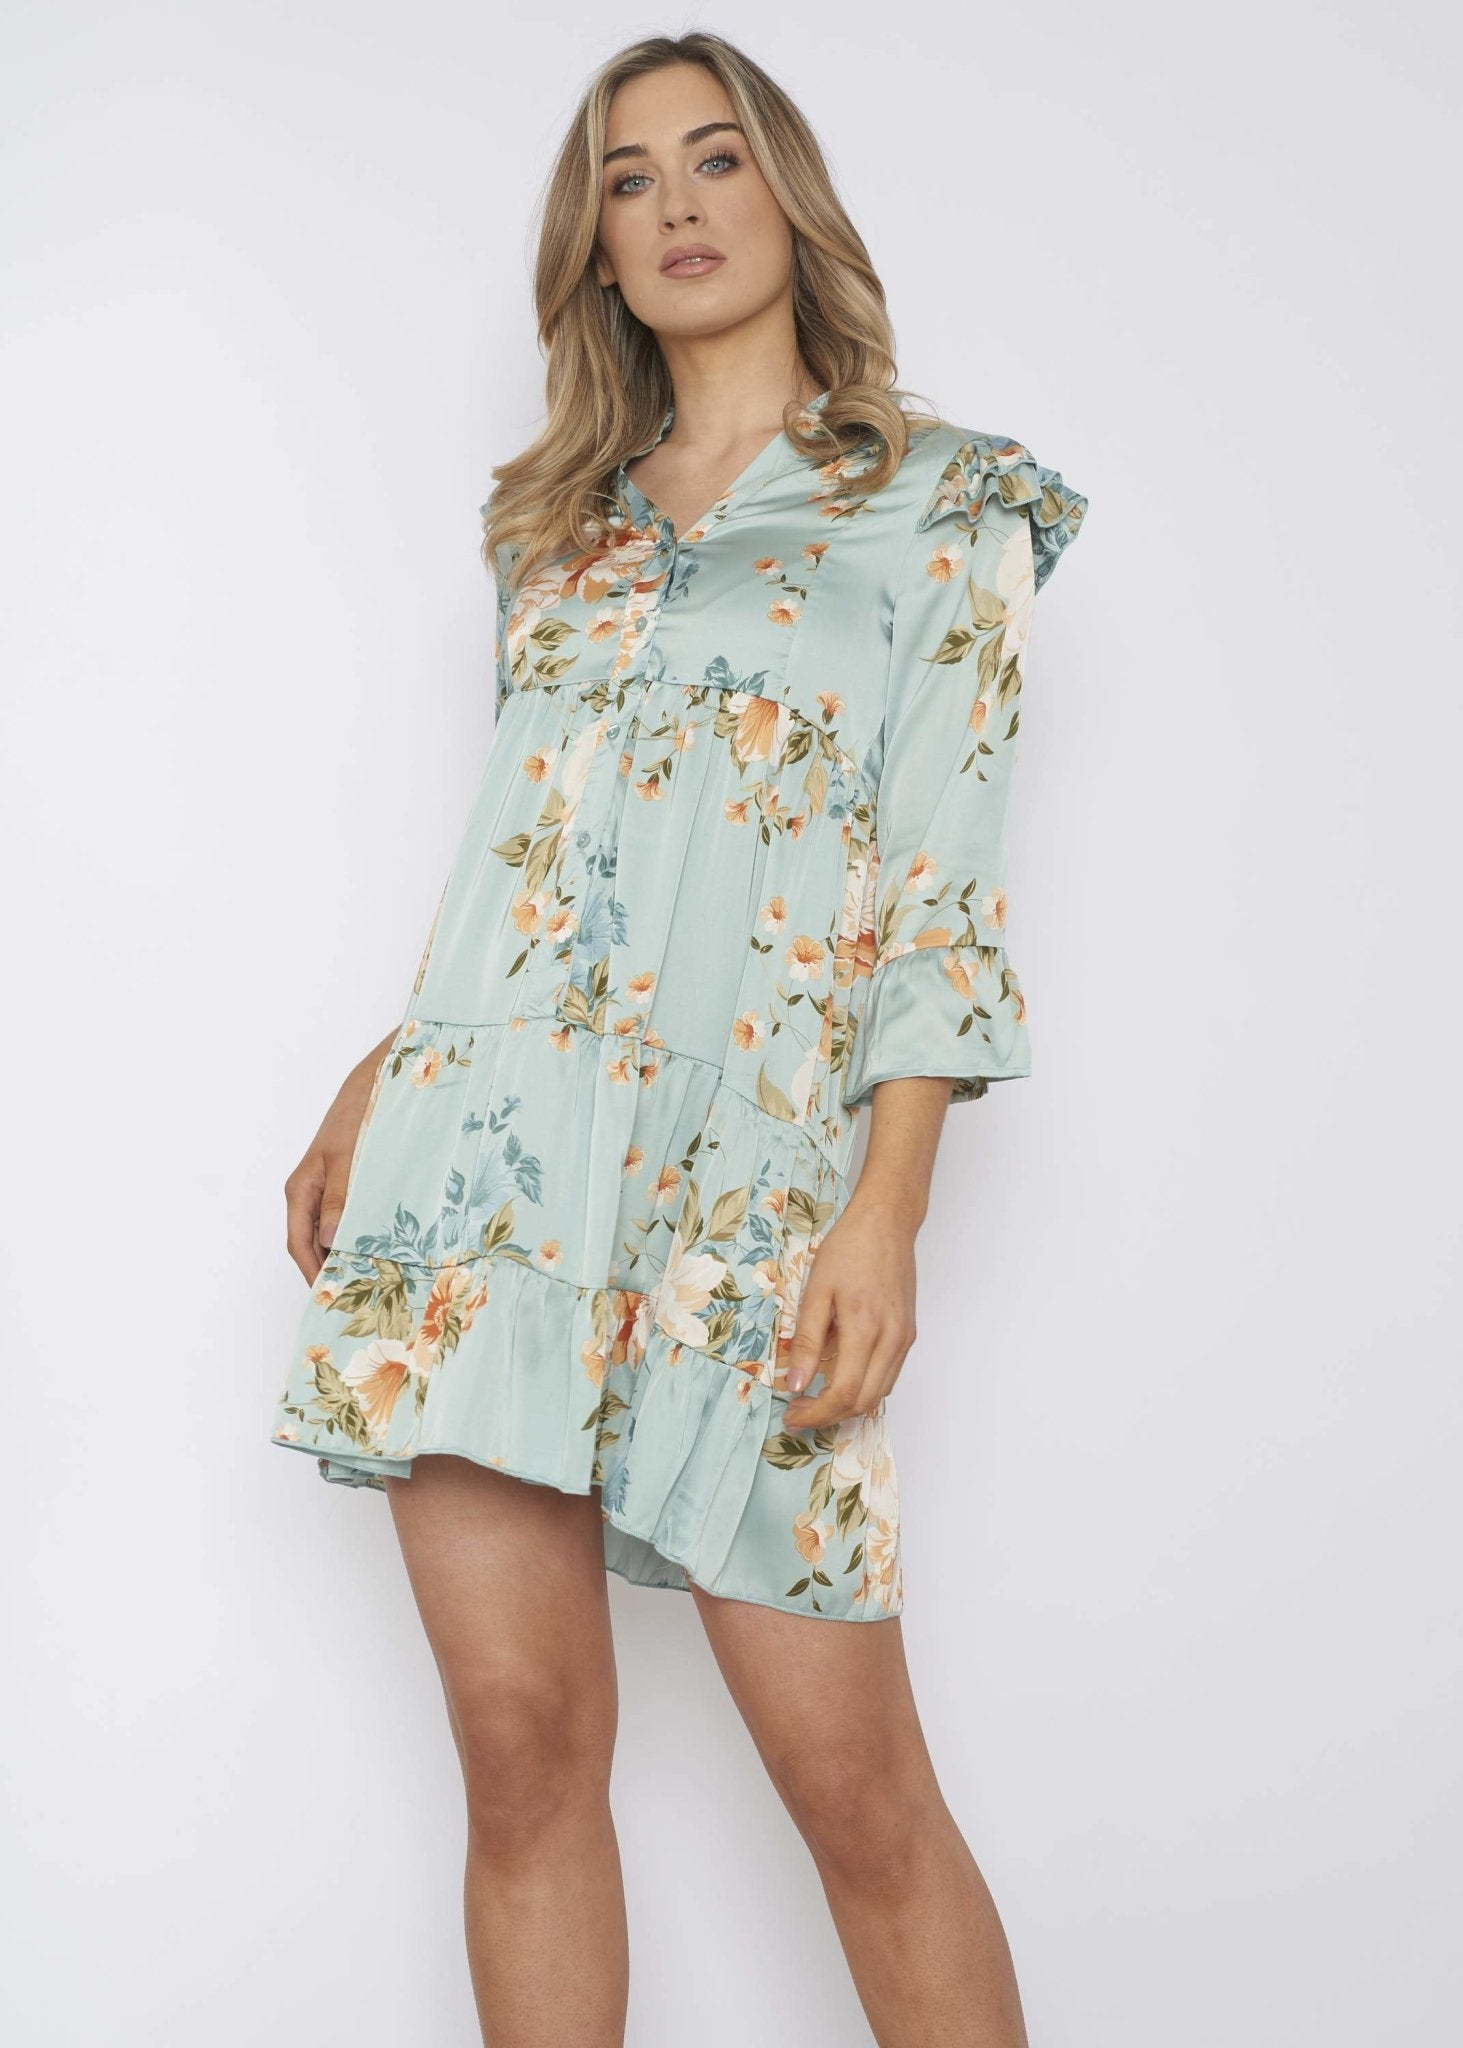 Emilia Floral Dress In Duck Egg - The Walk in Wardrobe